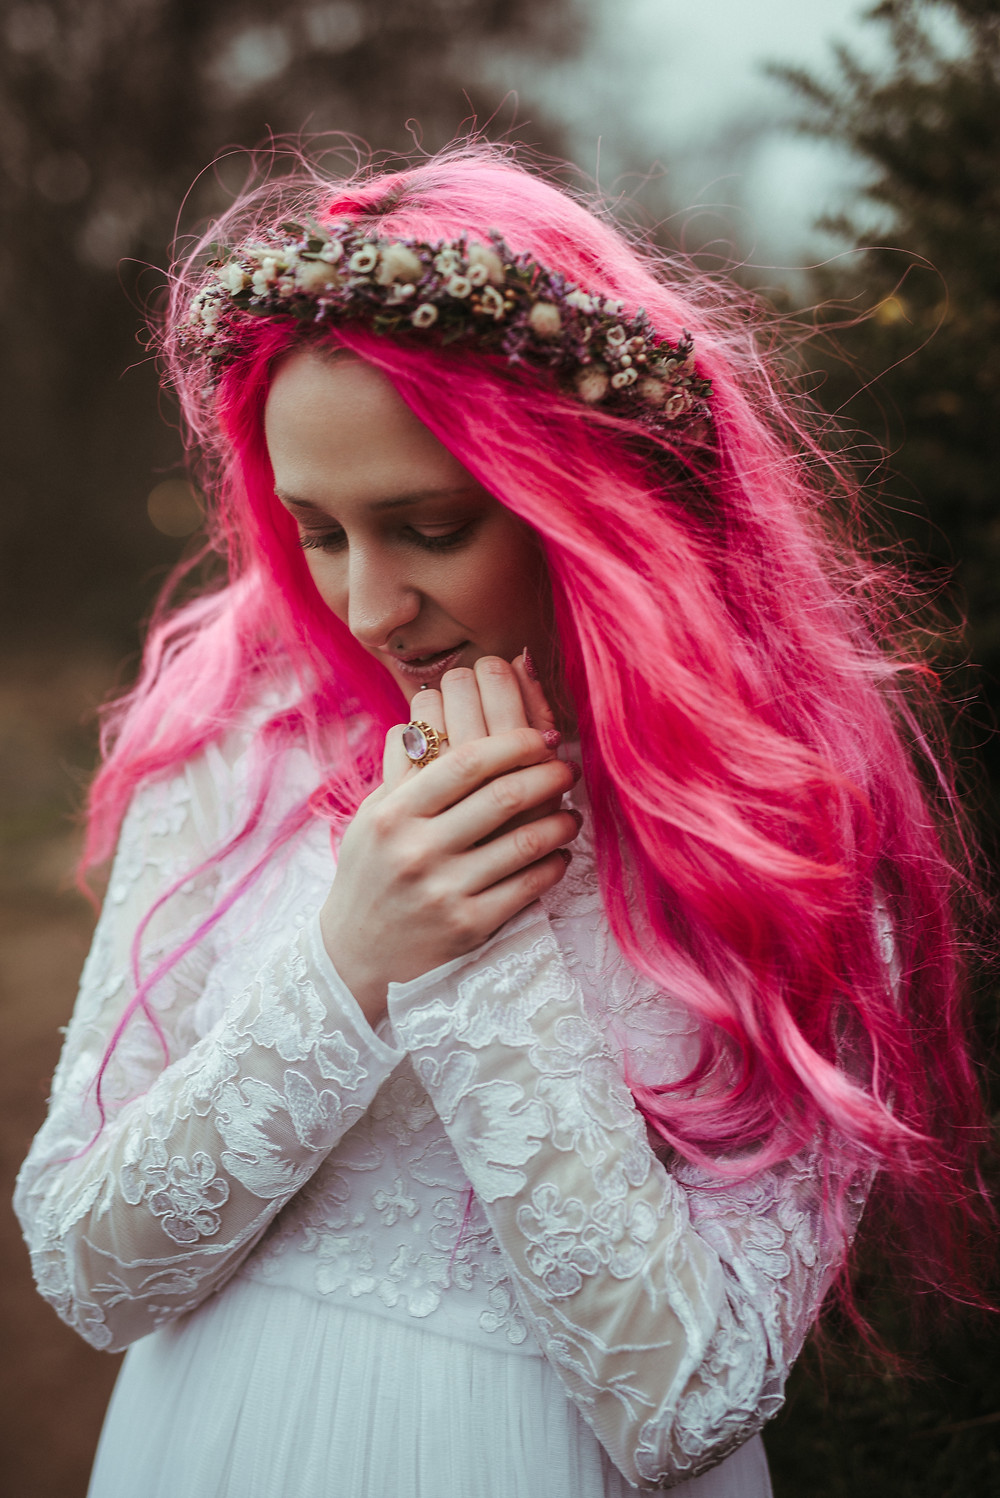 An alternative bride with a flowers crown and pink hair in Edinburgh at Holyrood Park. She is wearing a white flowing wedding dress with lace sleeves is from ASOS. Her wedding flower crown is from Snapdragon Edinburgh.